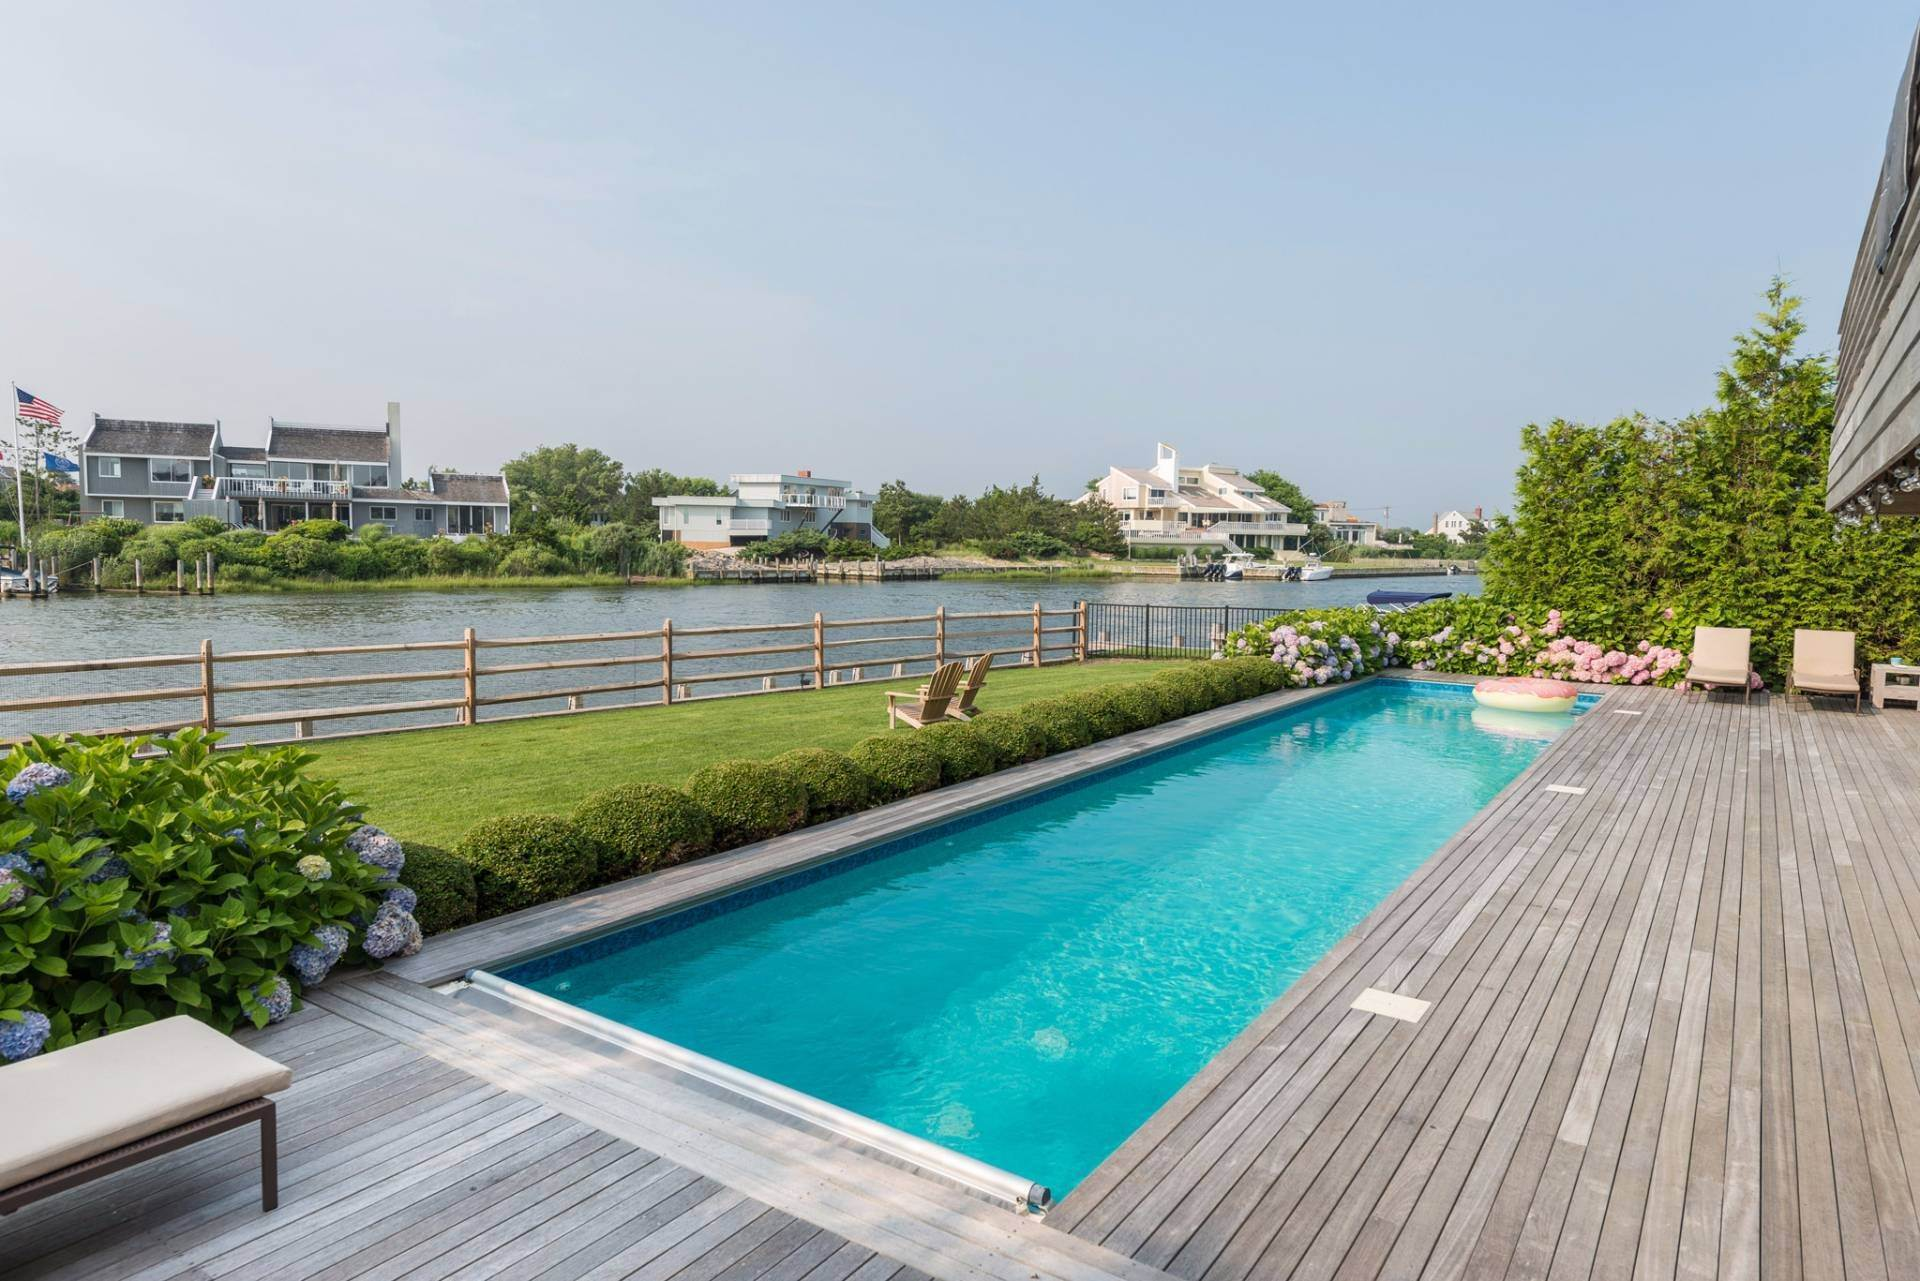 Single Family Homes at Quogue Bayfront With Lap Pool, Dock & Deeded Ocean Access Other Areas, NY 11959